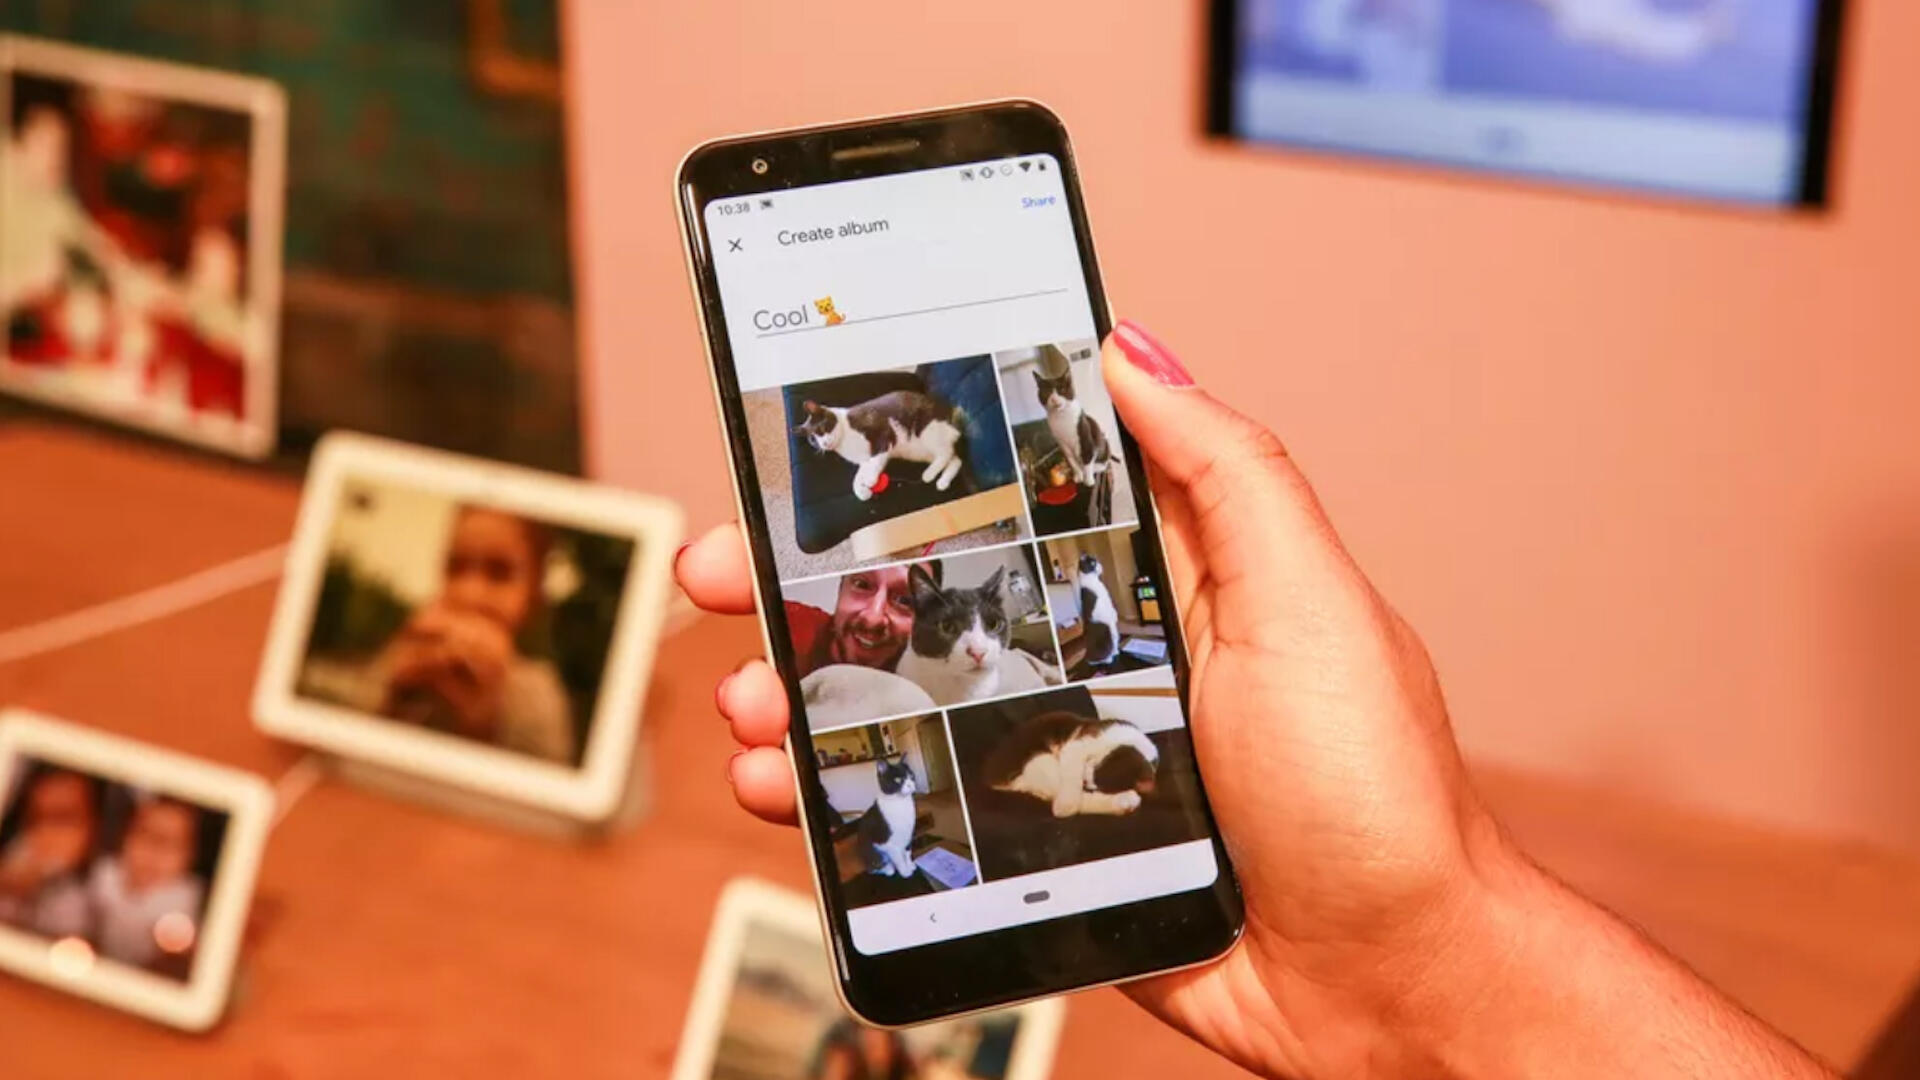 Video: Google to end free photo storage, F8 Refresh and WWDC kick off in the next week